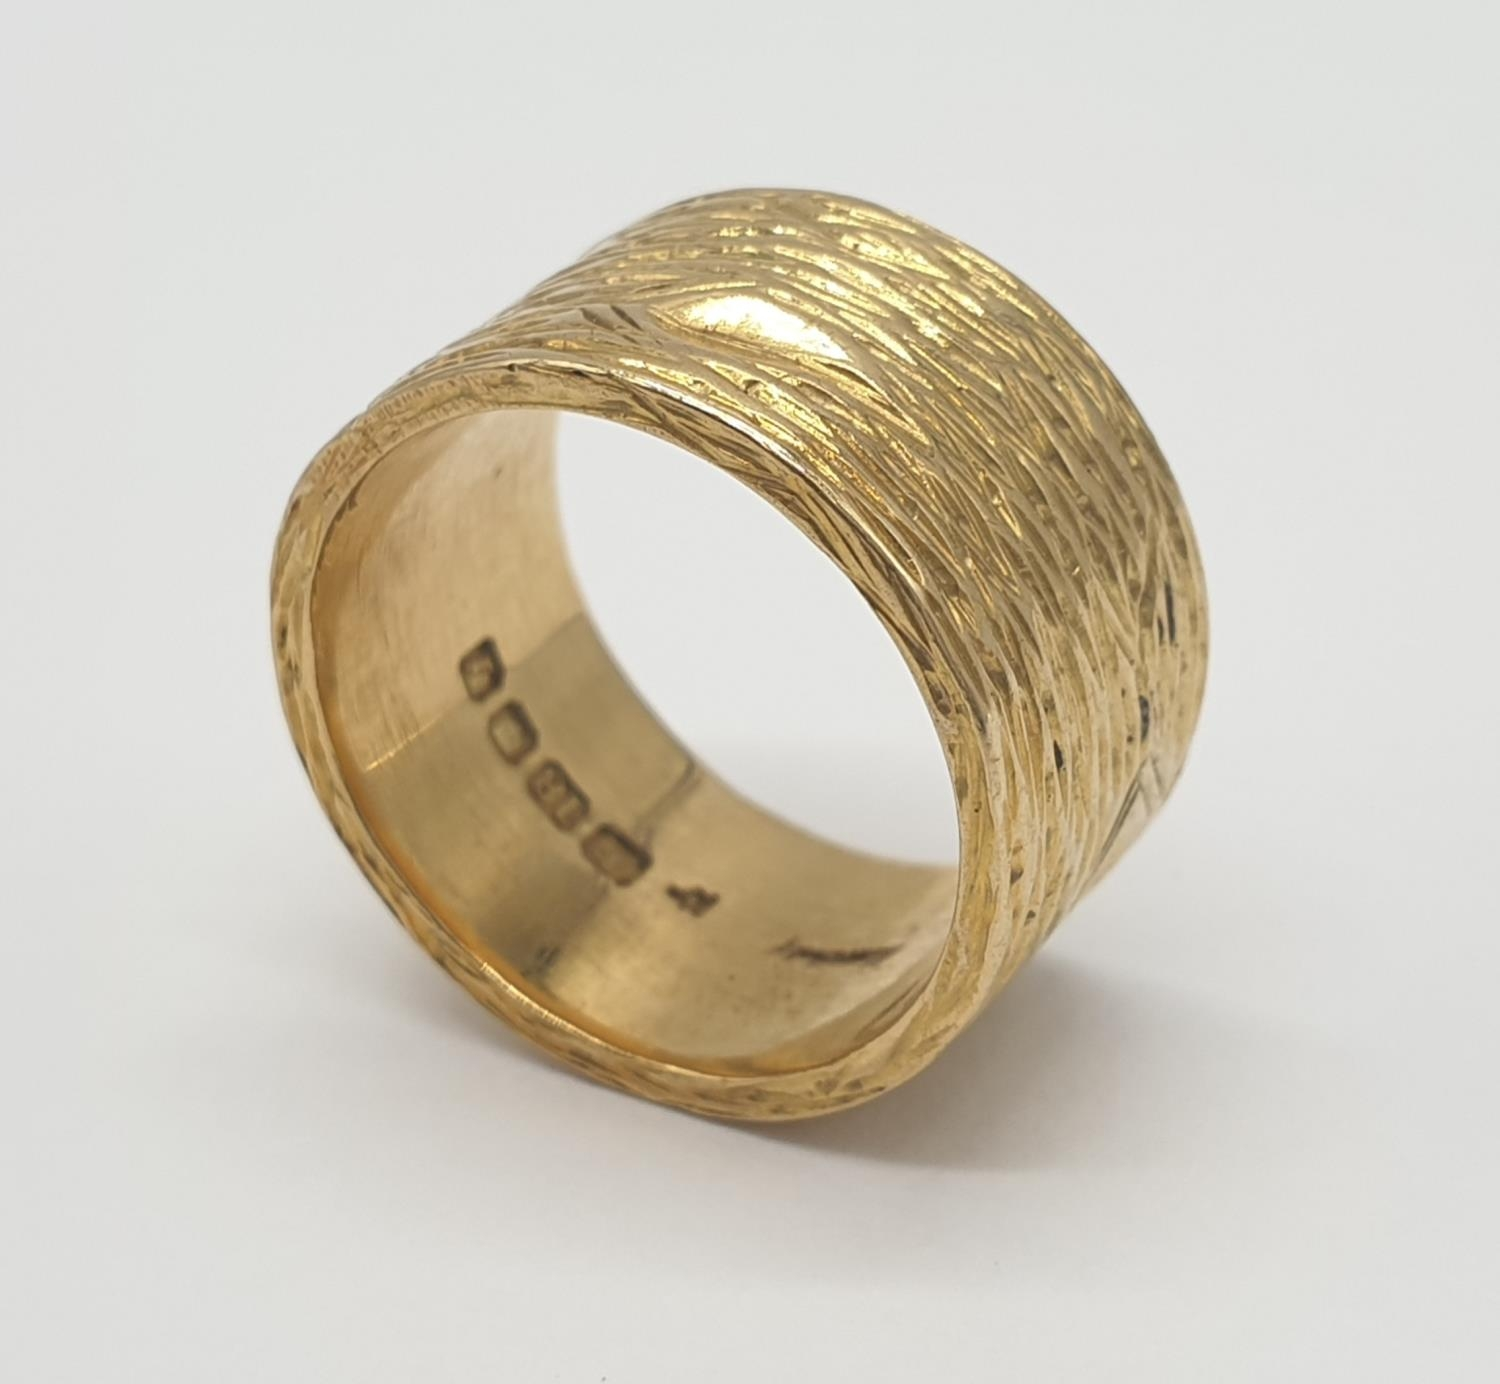 18ct gold wide band ring with grained pattern, weight 14.4g and size O - Image 3 of 4